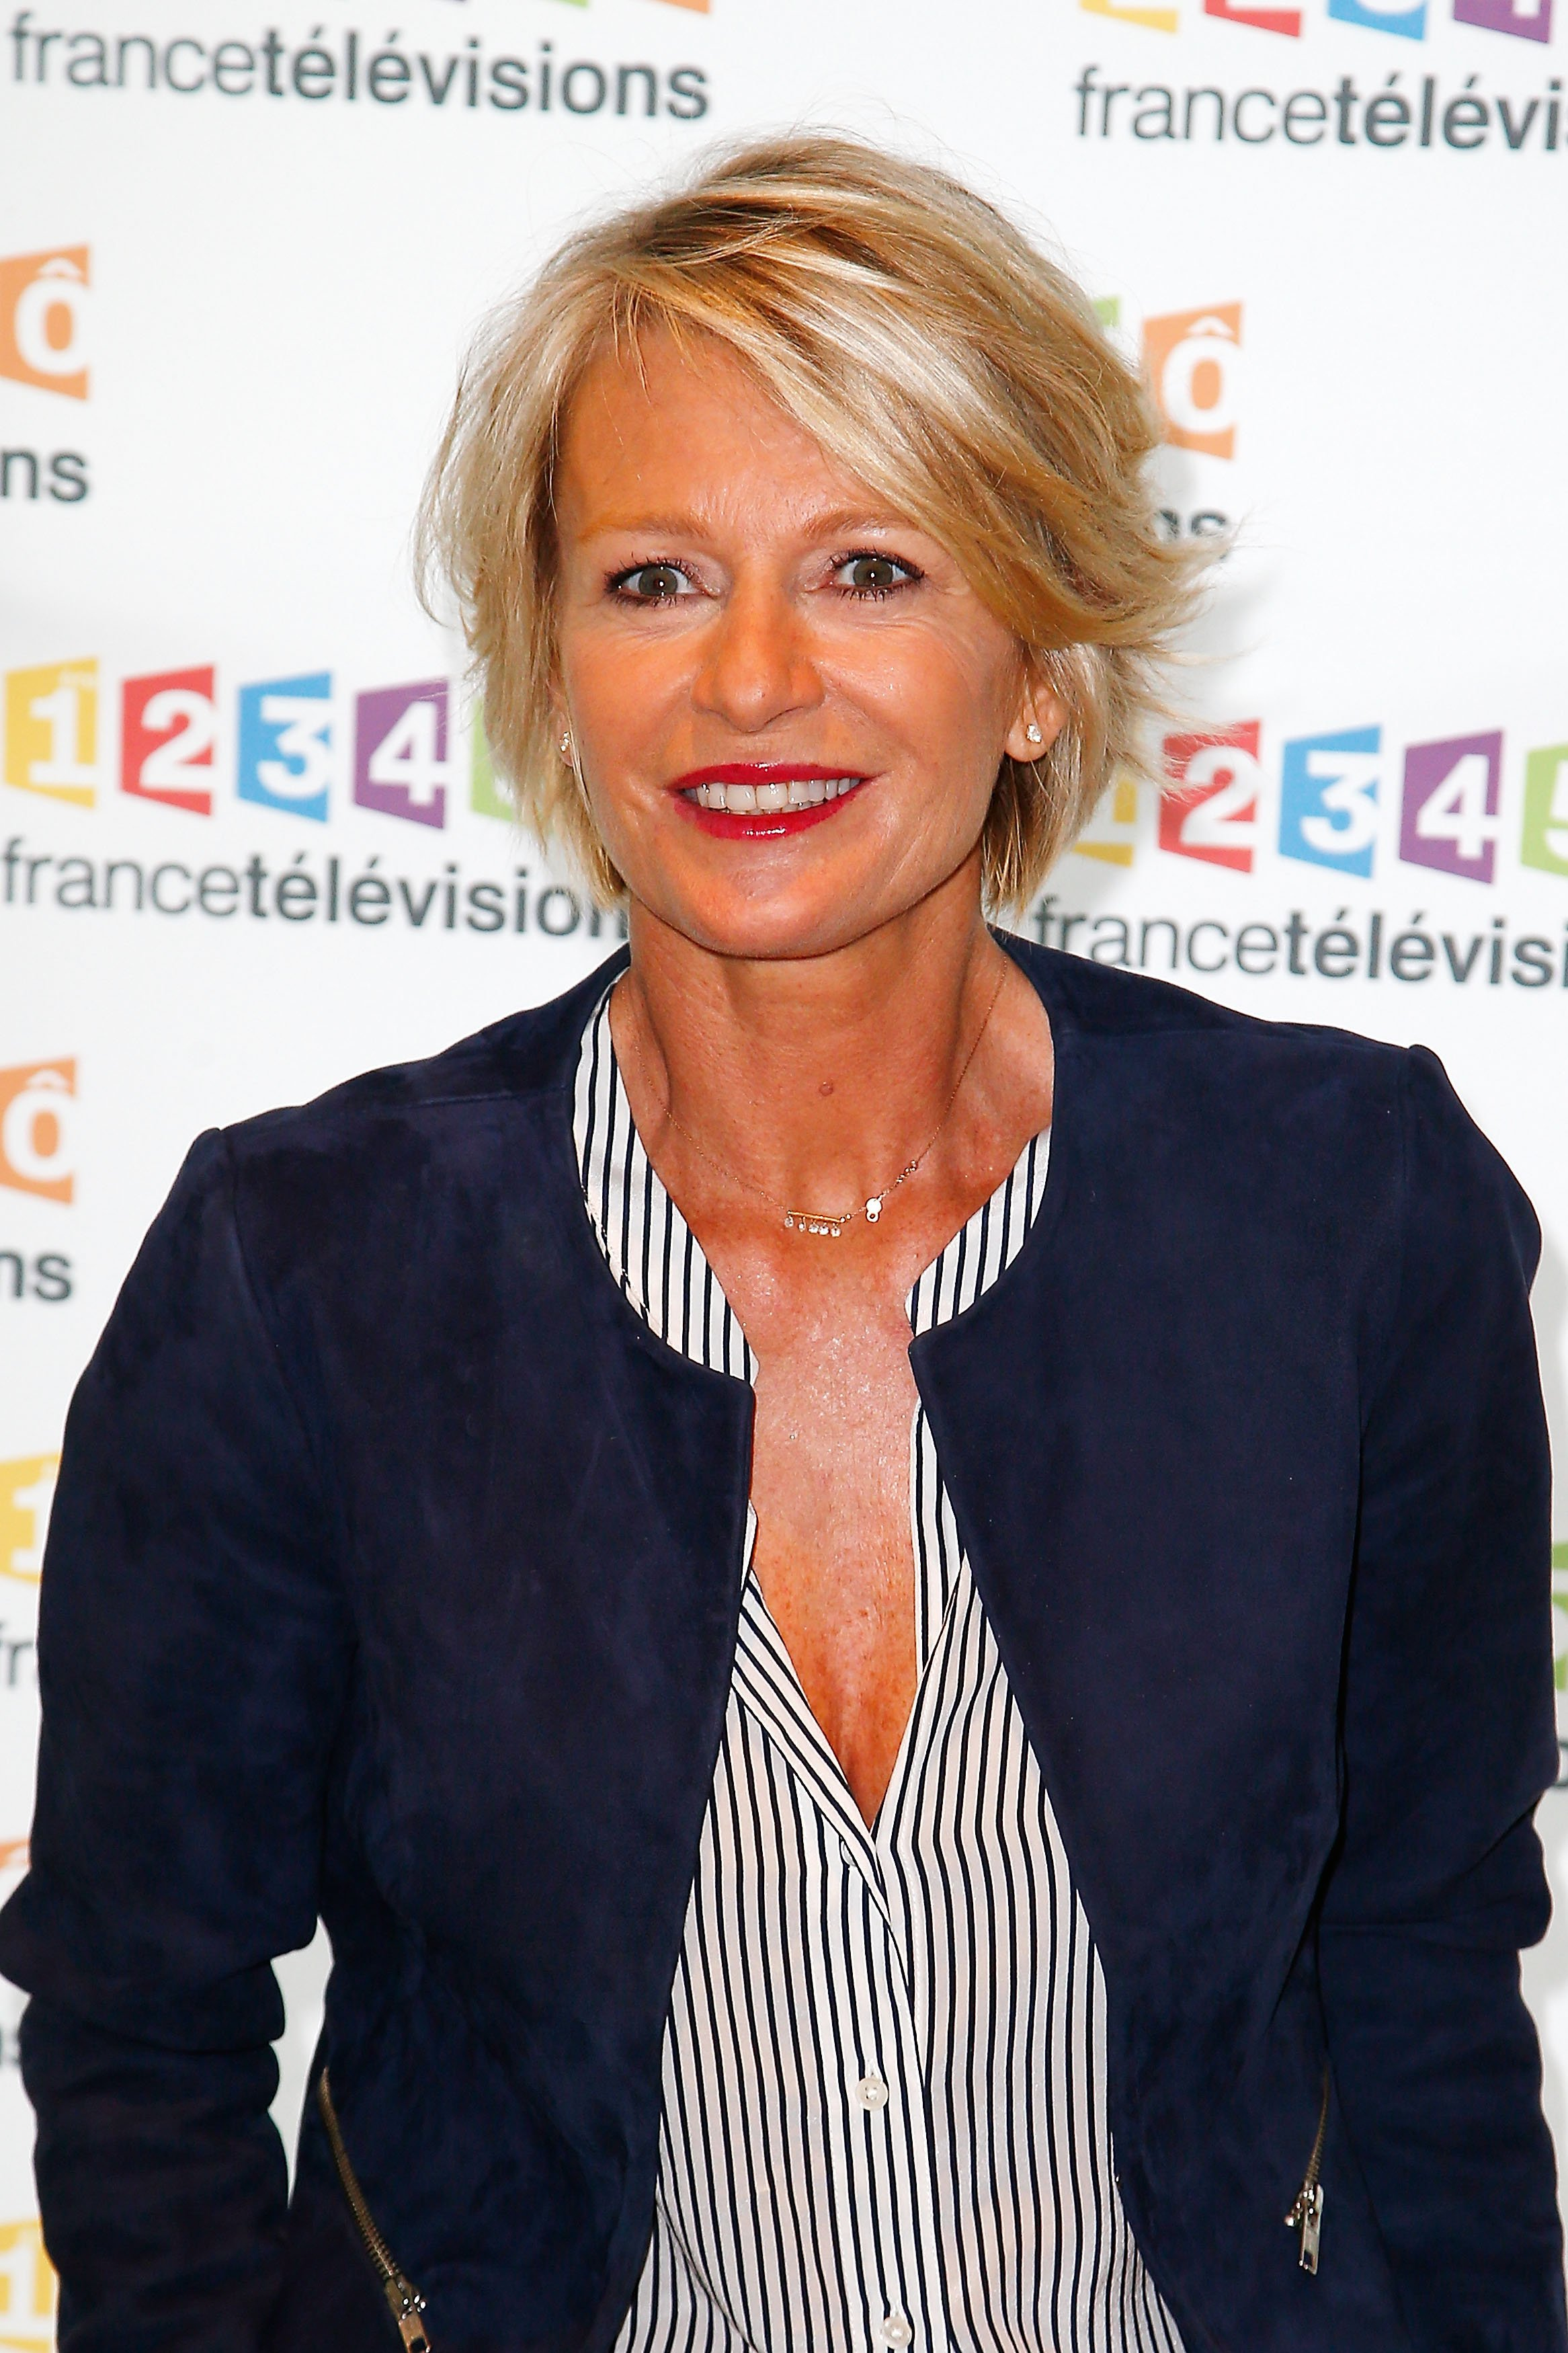 Sophie Davant lors de la conférence de presse du Telethon 2015 à France Télévision le 4 novembre 2015 à Paris, France. | Photo : Getty Images